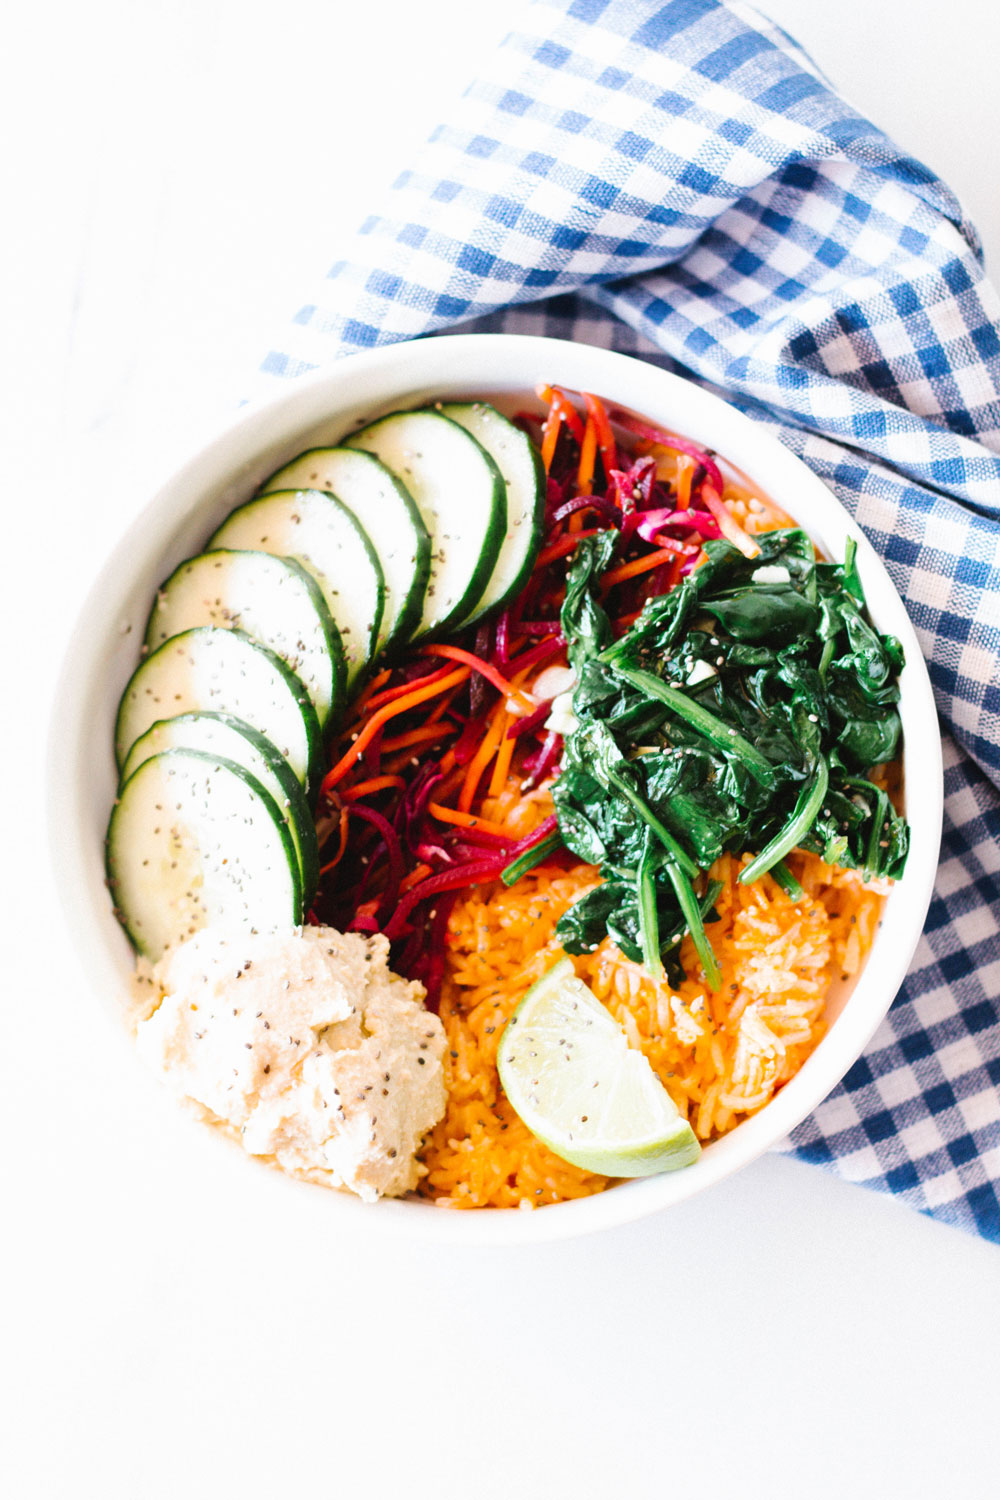 This Protein-Packed Vegan Buddha Bowl is perfect for lunch or dinner. It's hearty, flavorful, easily whipped up in under 30 minutes and also ideal for meal planning, which is a huge bonus. https://www.spotebi.com/recipes/protein-packed-vegan-buddha-bowl/